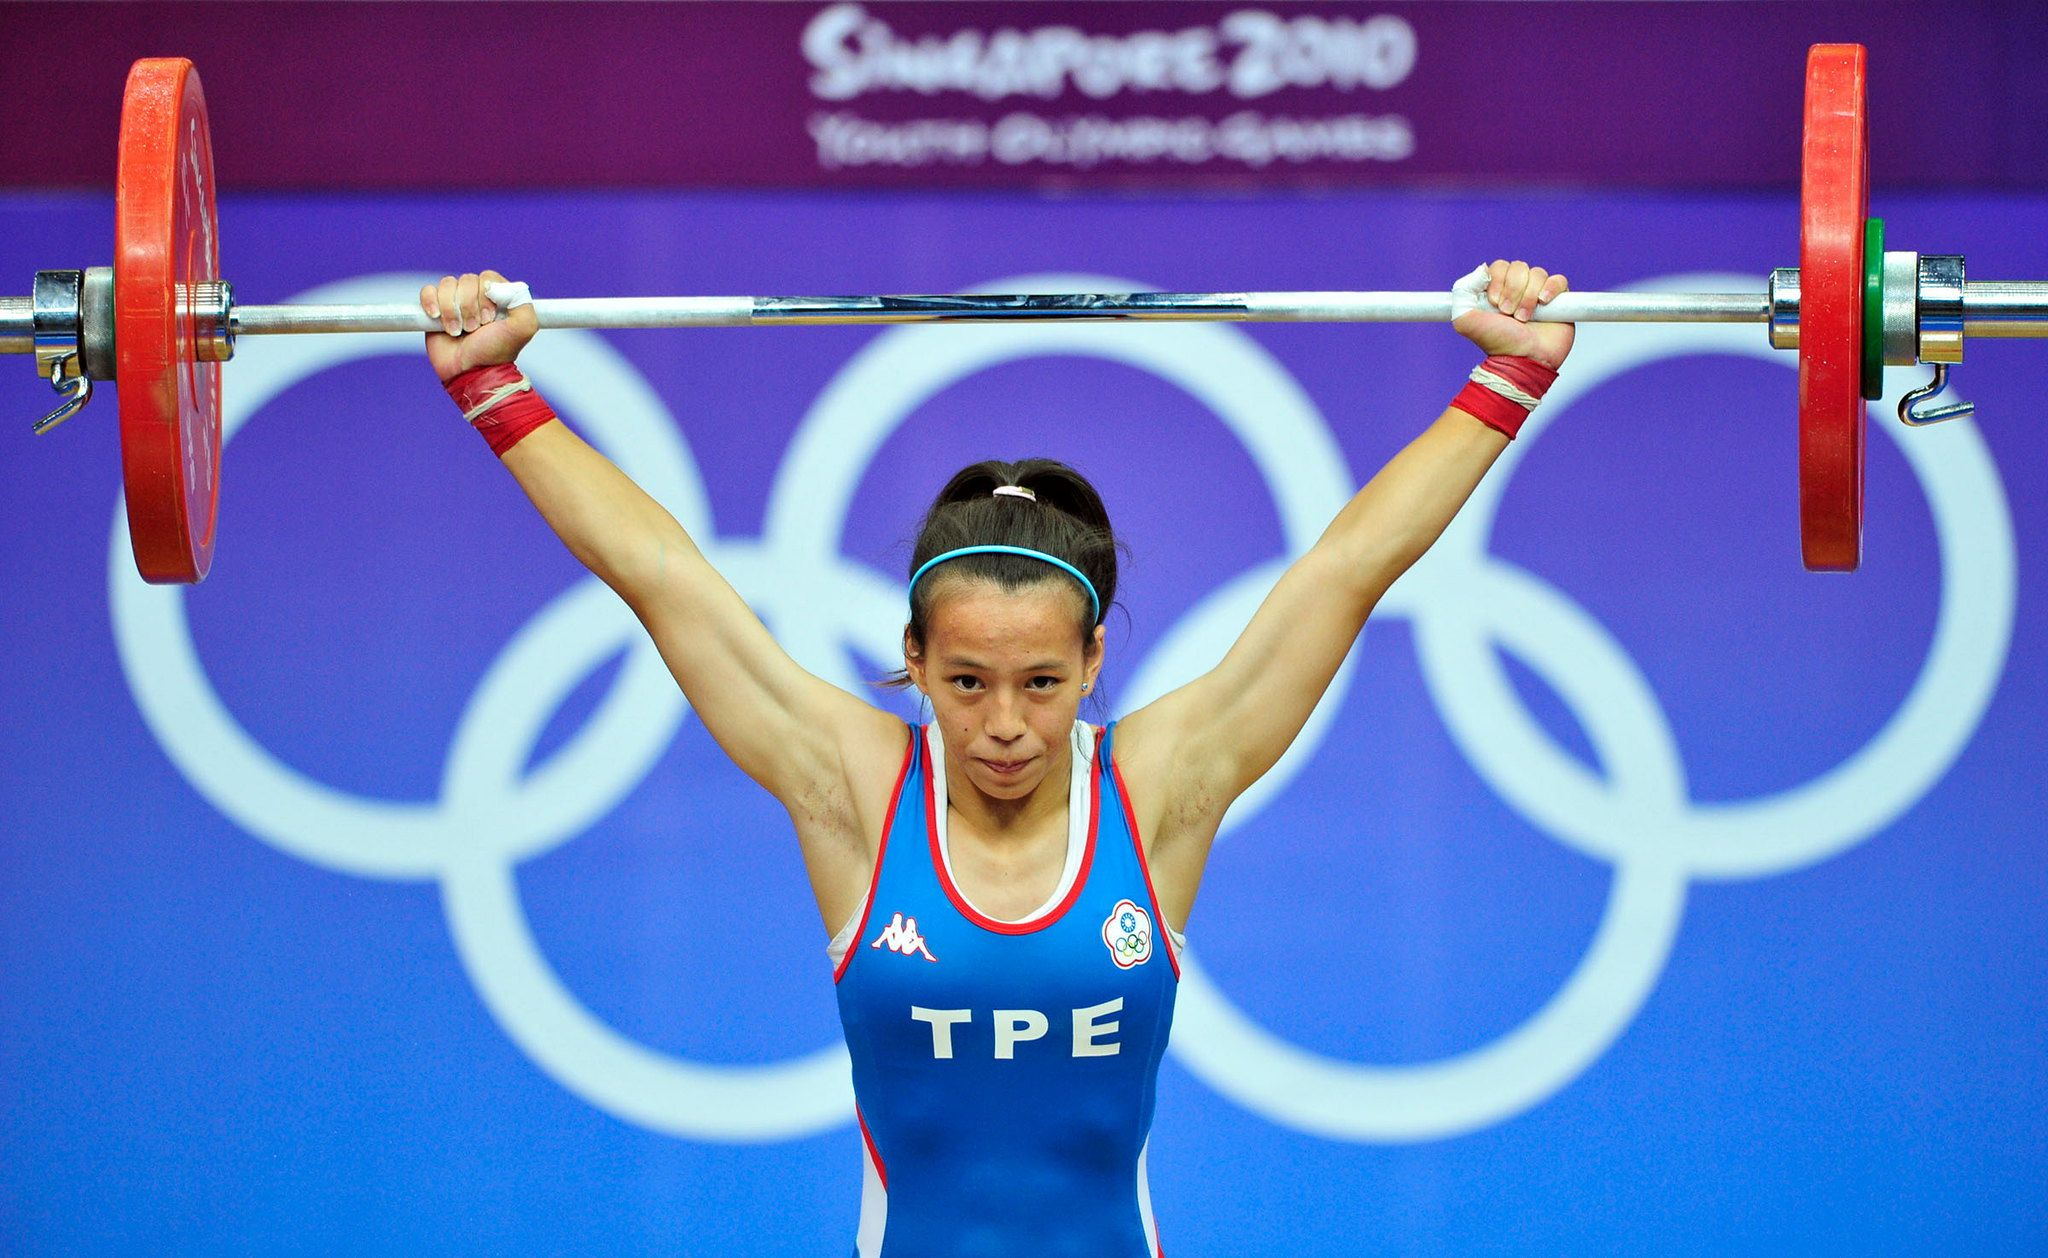 A woman doing an Olympic lift